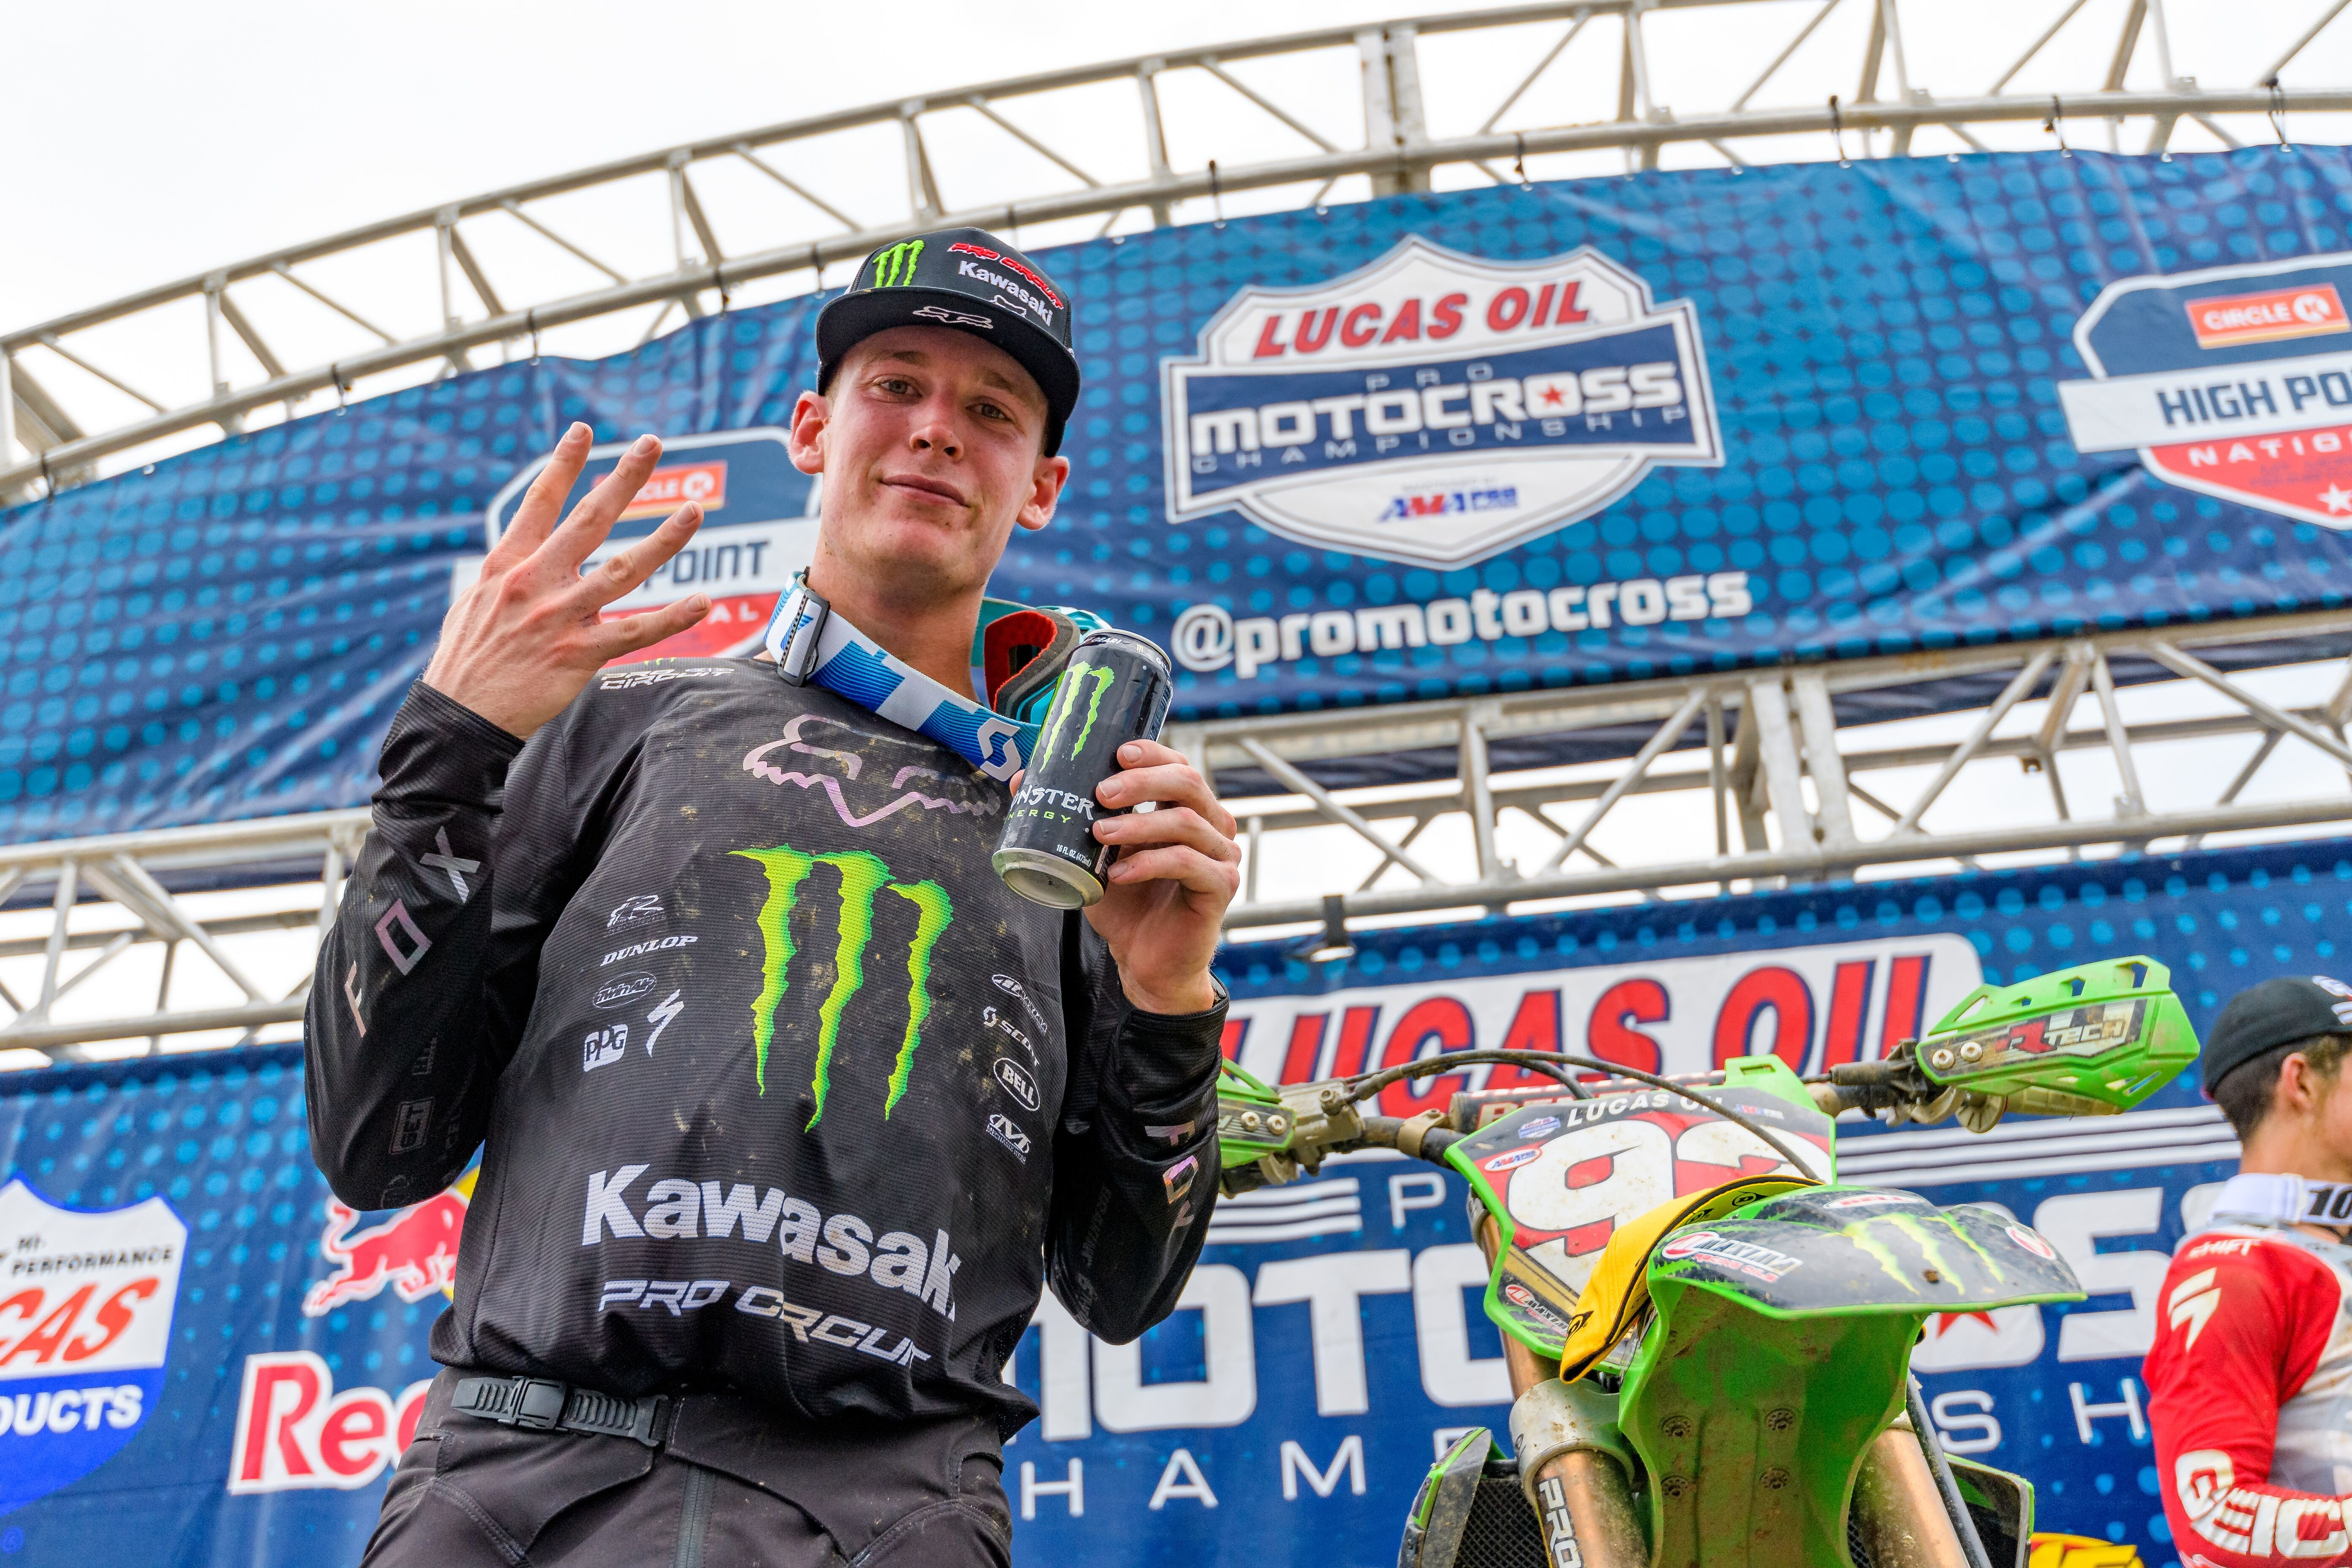 Monster Energy Pro Circuit Kawasaki's Cianciarulo Keeps Win-Streak Alive and Extends Points Lead